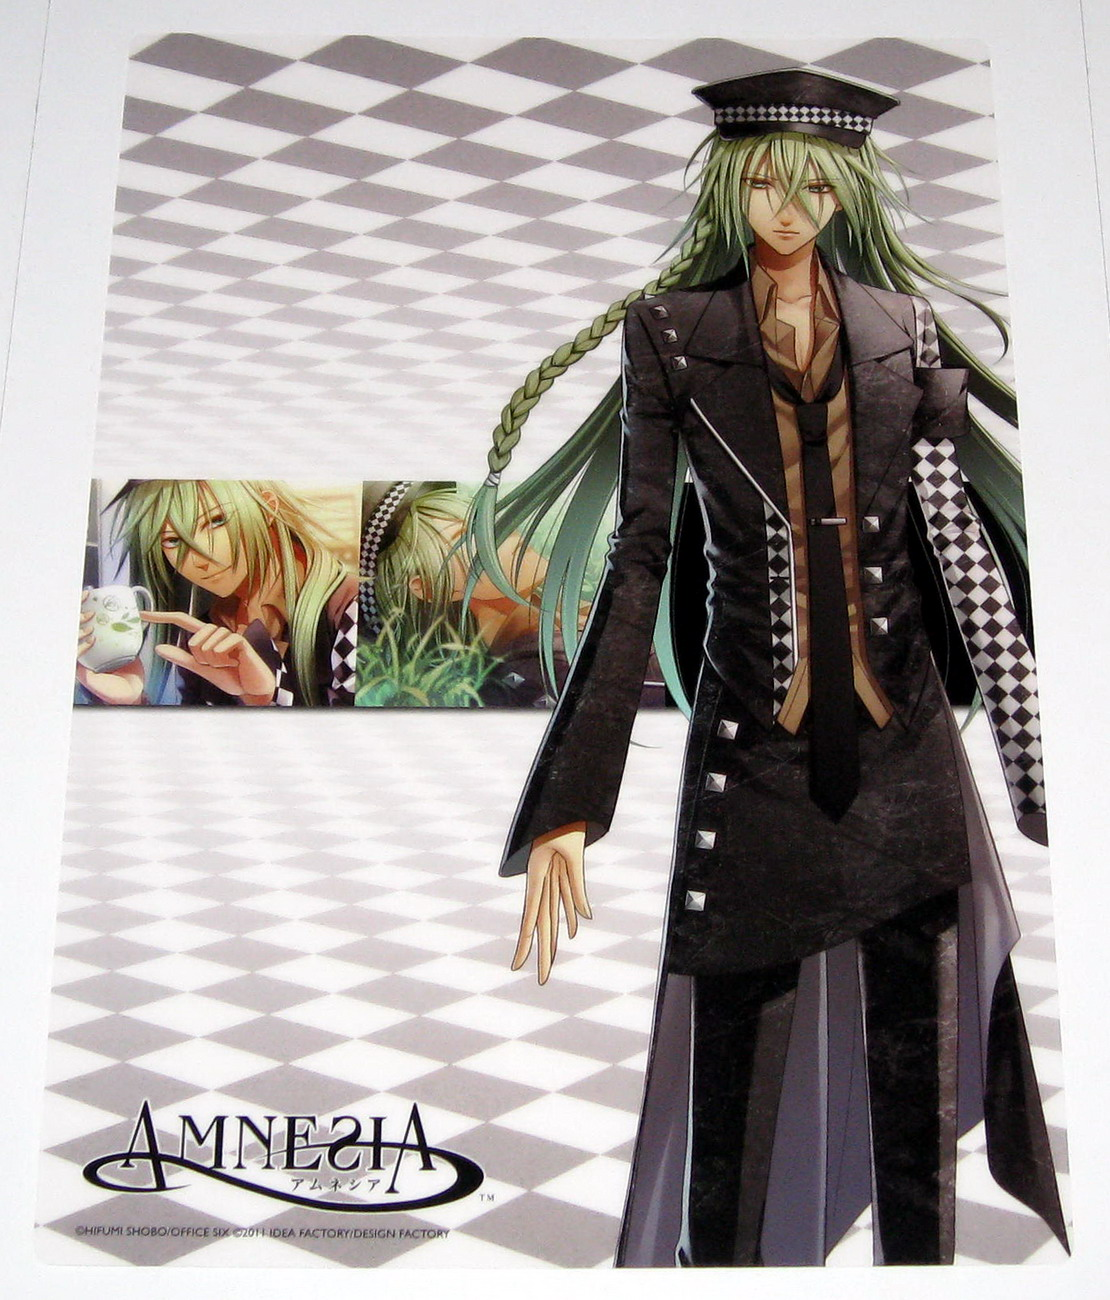 Amnesia Still Collection Premium v7 - 05